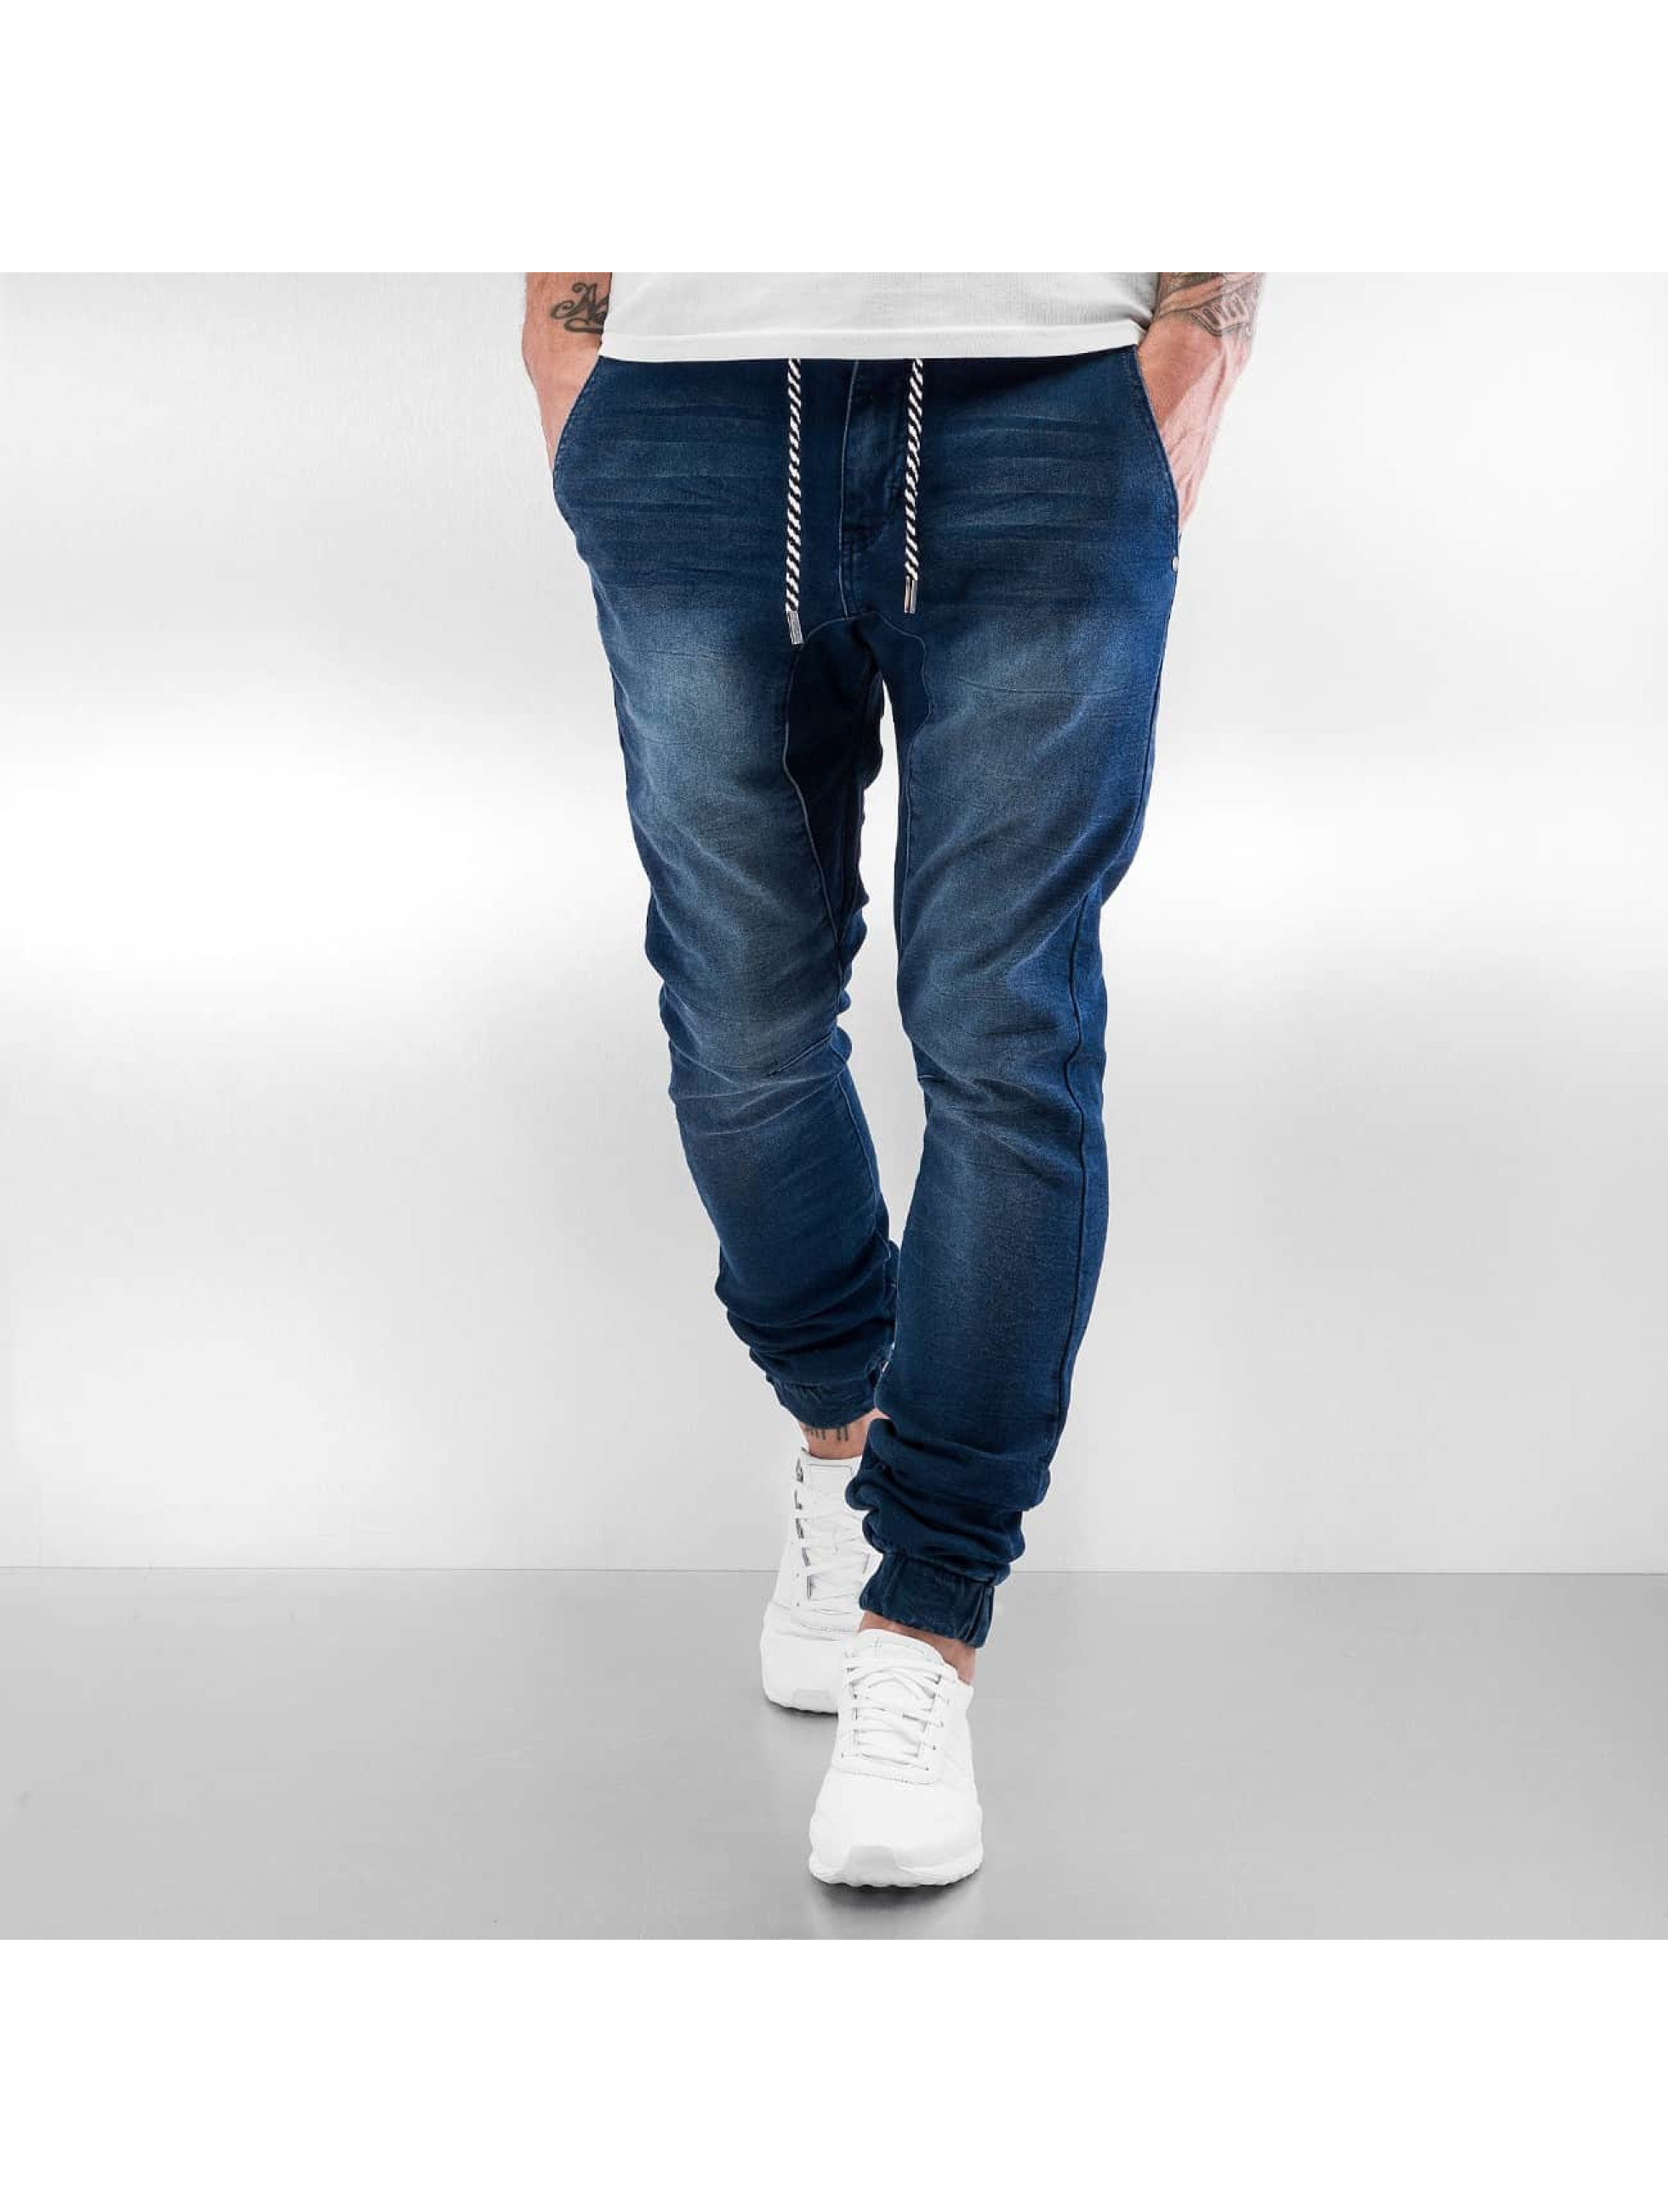 sky rebel herren jogginghose jeans style in blau 298474. Black Bedroom Furniture Sets. Home Design Ideas